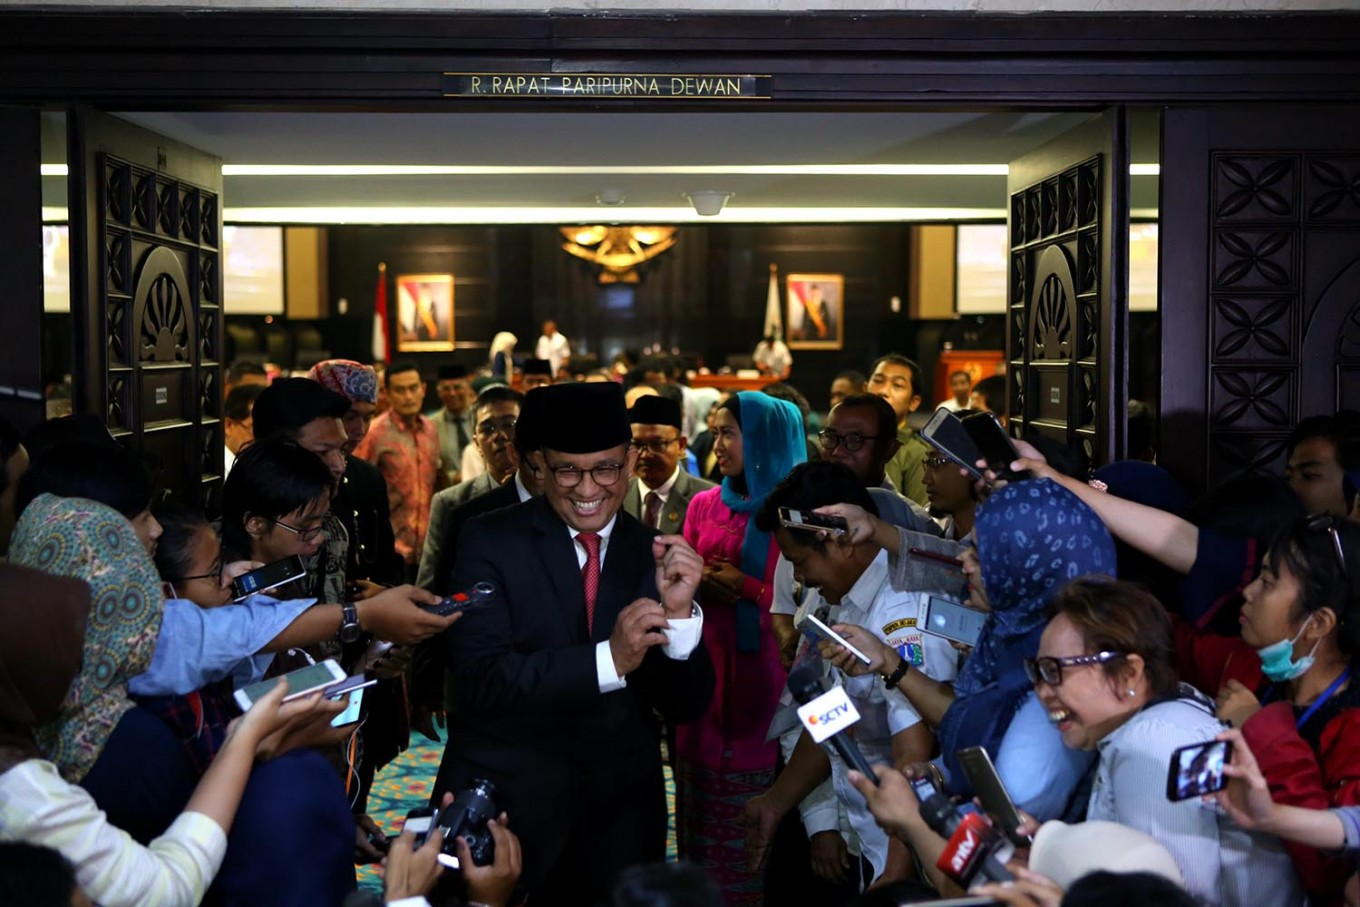 Online millennial platform calls for explanation on inflated Jakarta budget